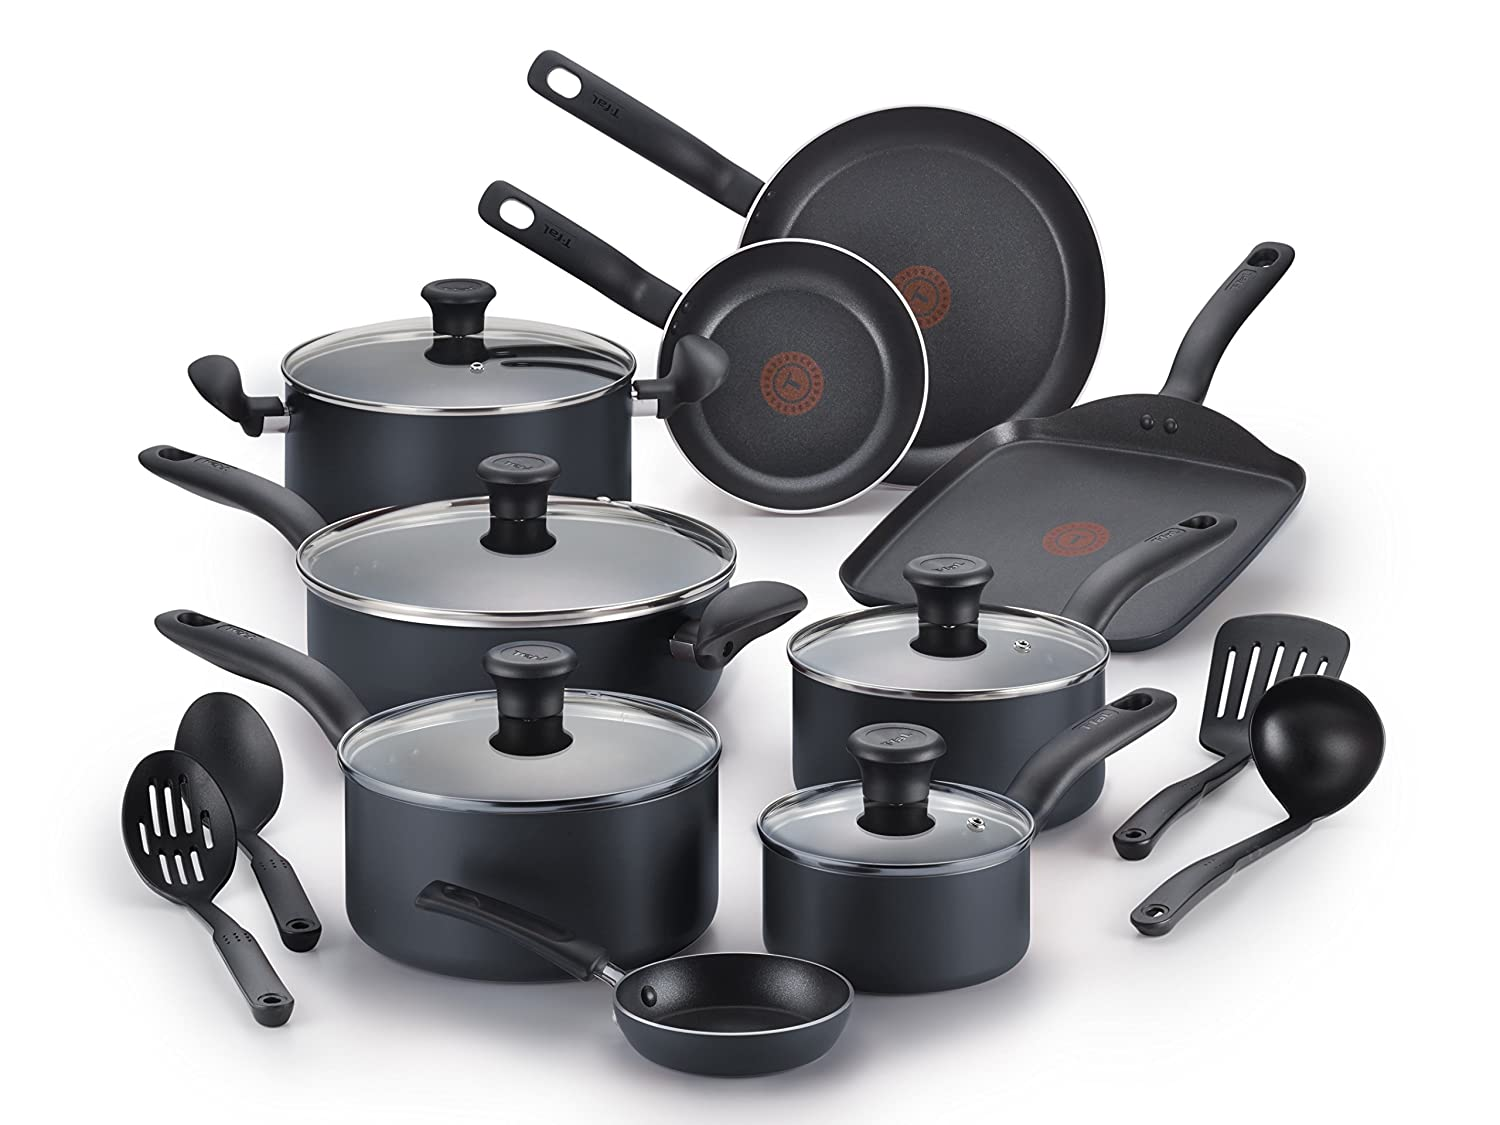 T-fal B167SI Initiatives Nonstick Inside and Out Dishwasher Safe Oven Safe Cookware Set, 18-Piece, Charcoal